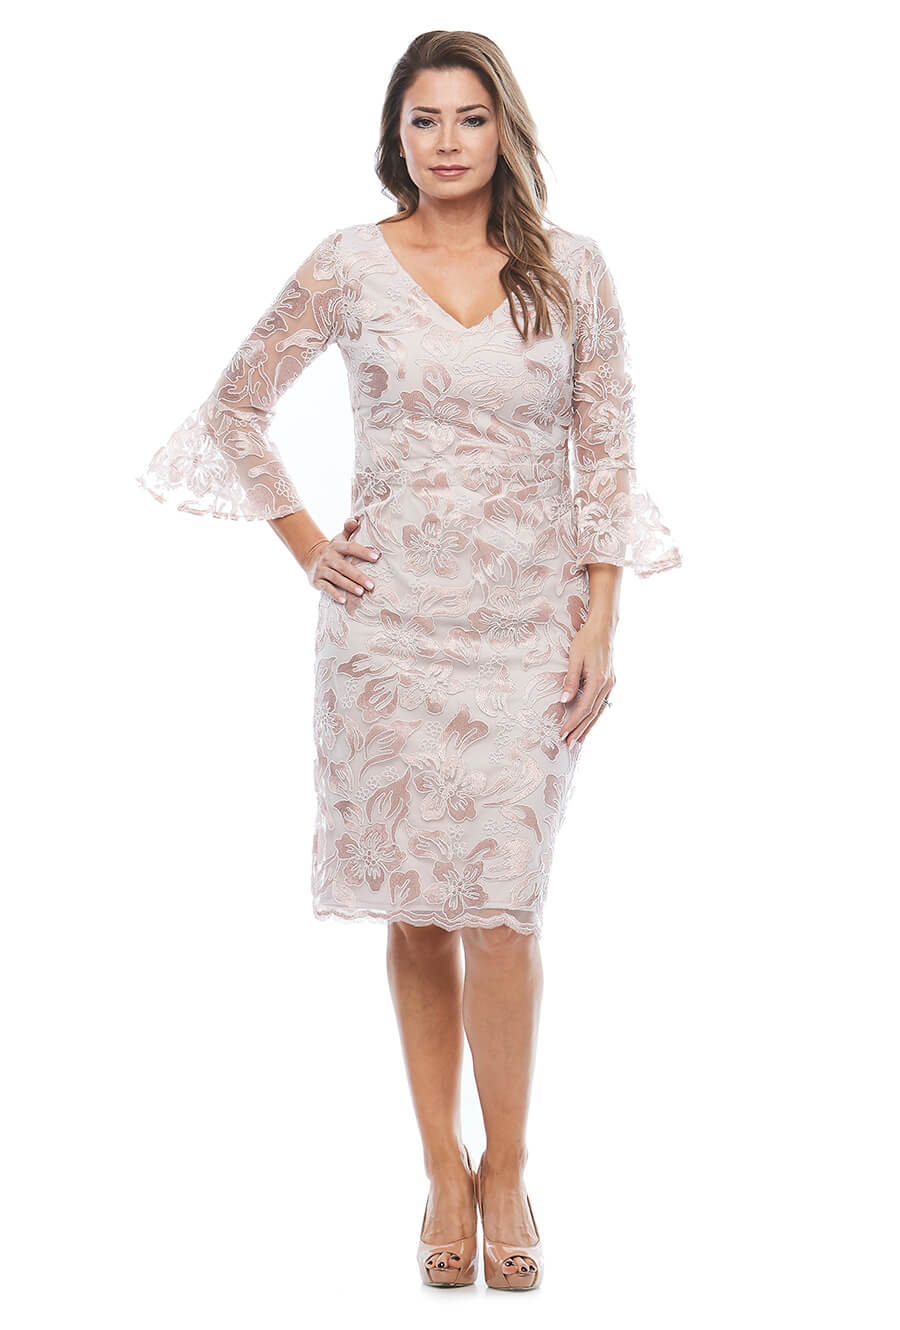 Lace embroidered dress with ruched waist and 3/4 bell sleeves